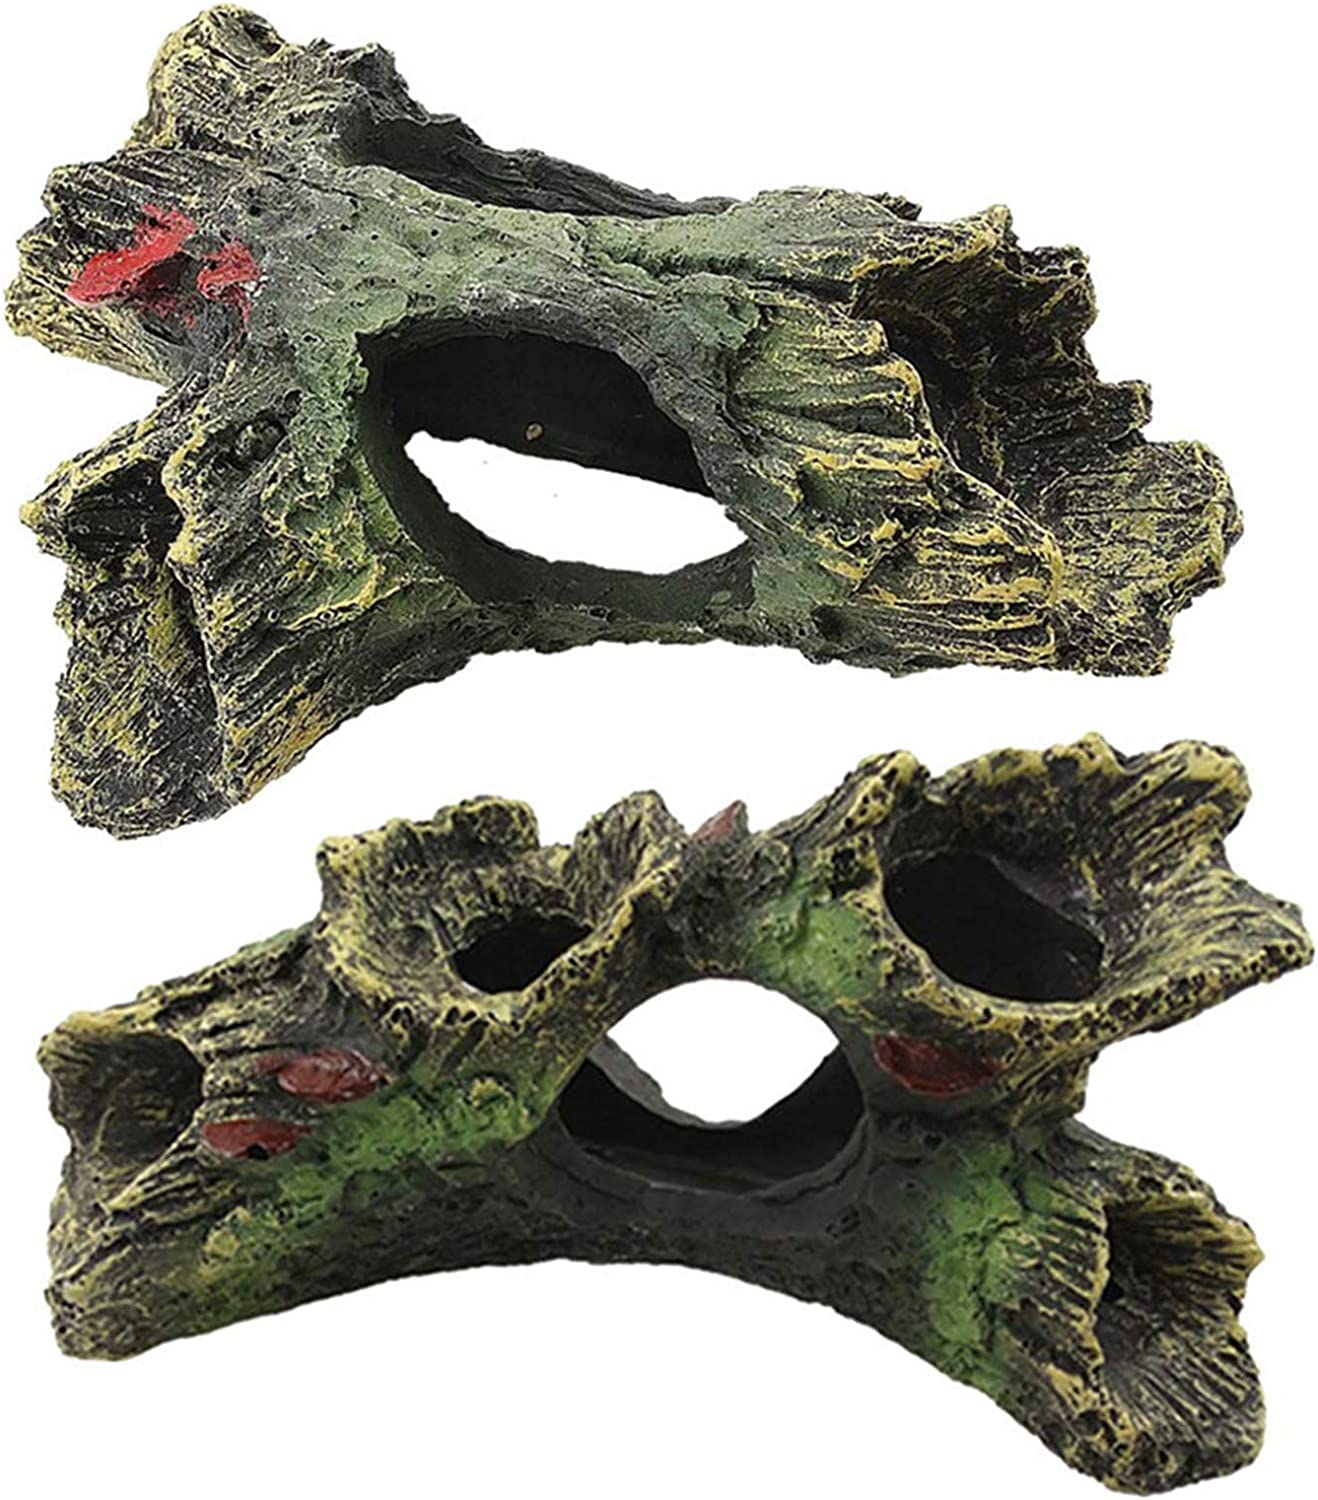 DoubleWood 2 PCS Decaying Trunk Aquarium Betta Fish Ornament Driftwood Resin Crafts Ornament for Aquarium Decoration Fish Tank Wood with Holes & Aquarium Caves Fish Tank Wood Decor